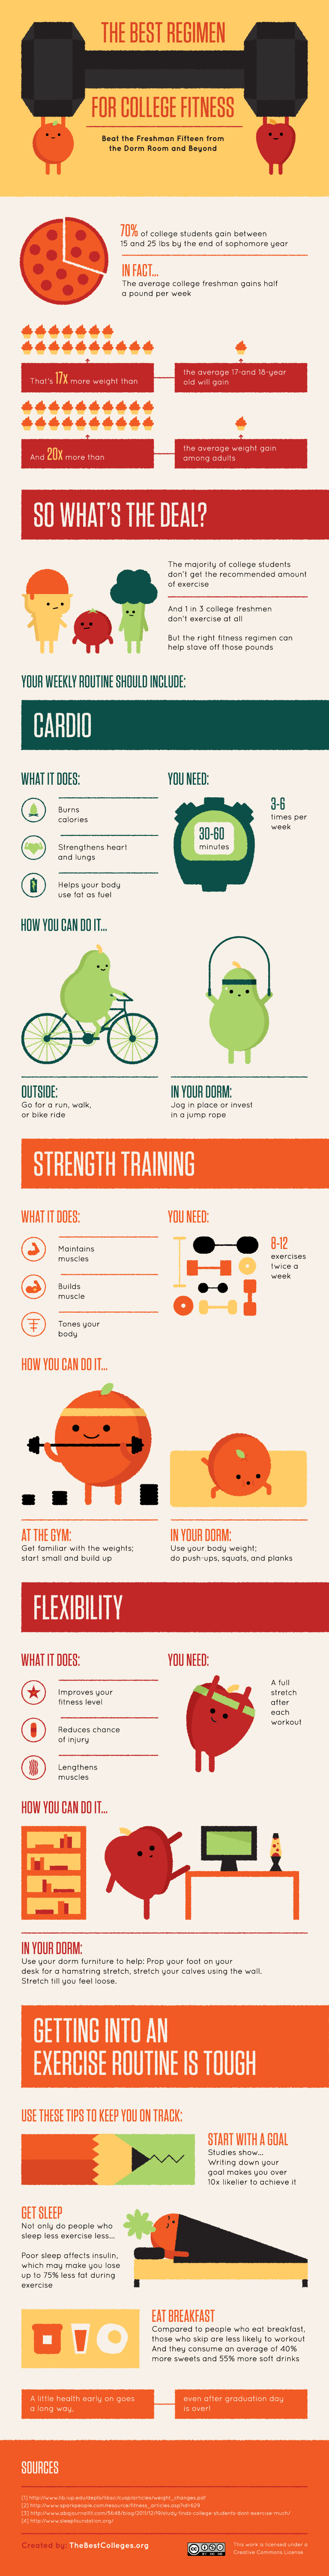 fitness how to beat the freshman infographic now freshman 15